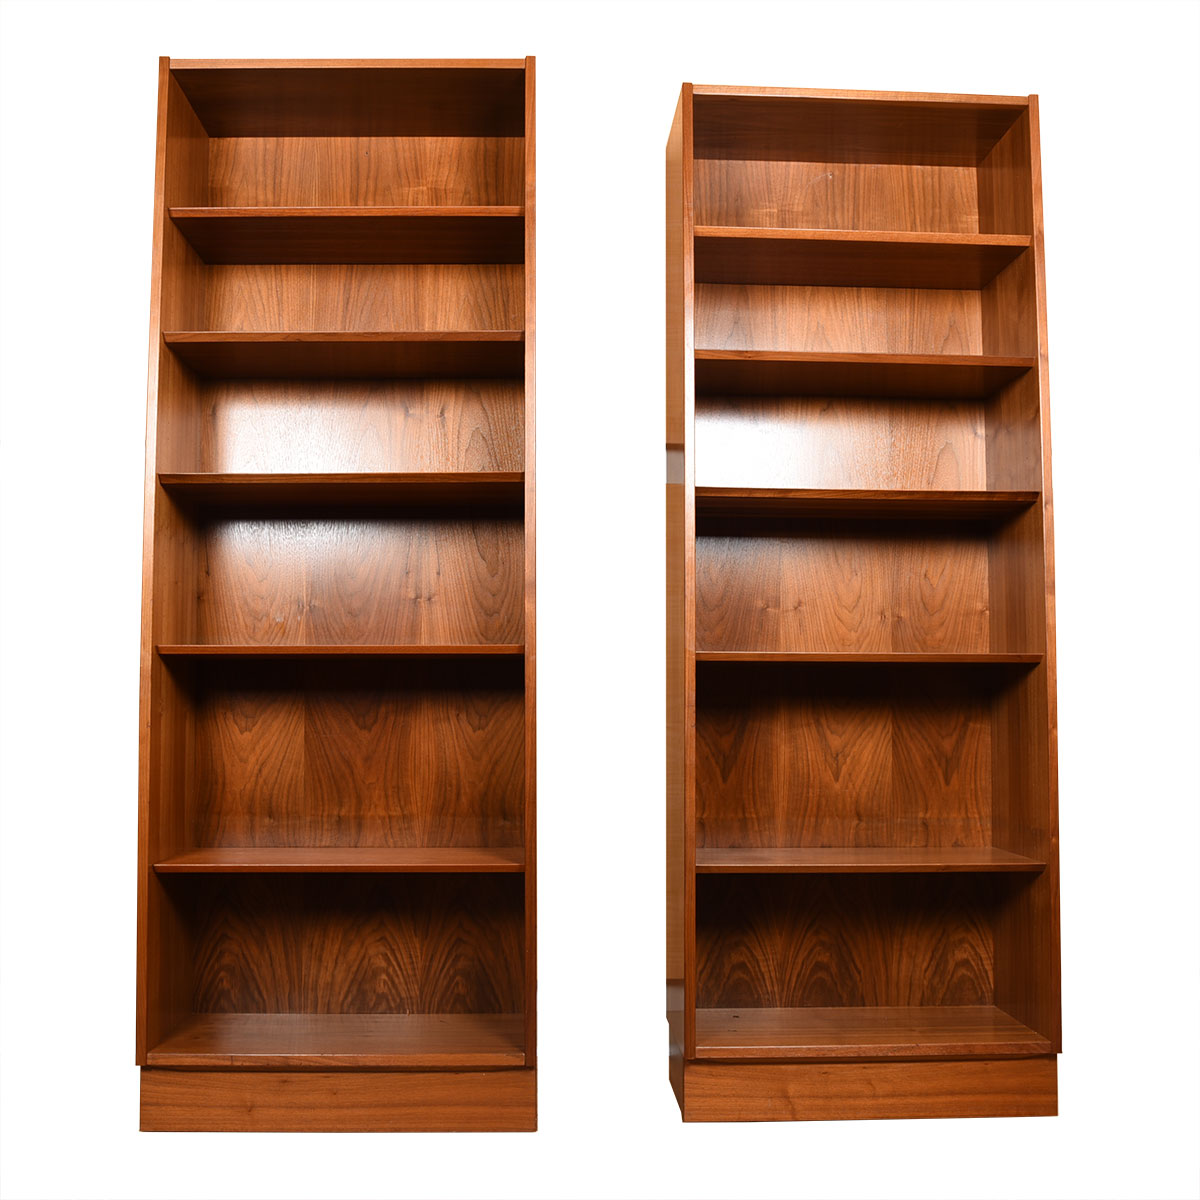 Pair of Tall Walnut Bookcases w/ Adjustable Shelves